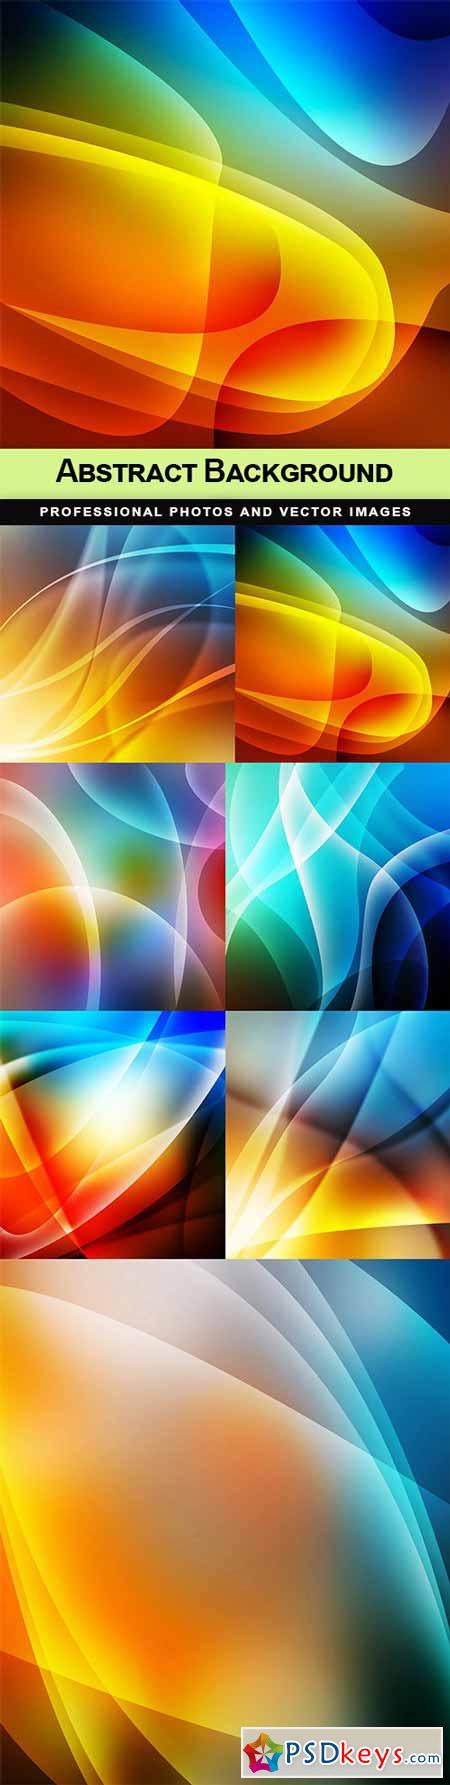 Abstract Background - 7 UHQ JPEG